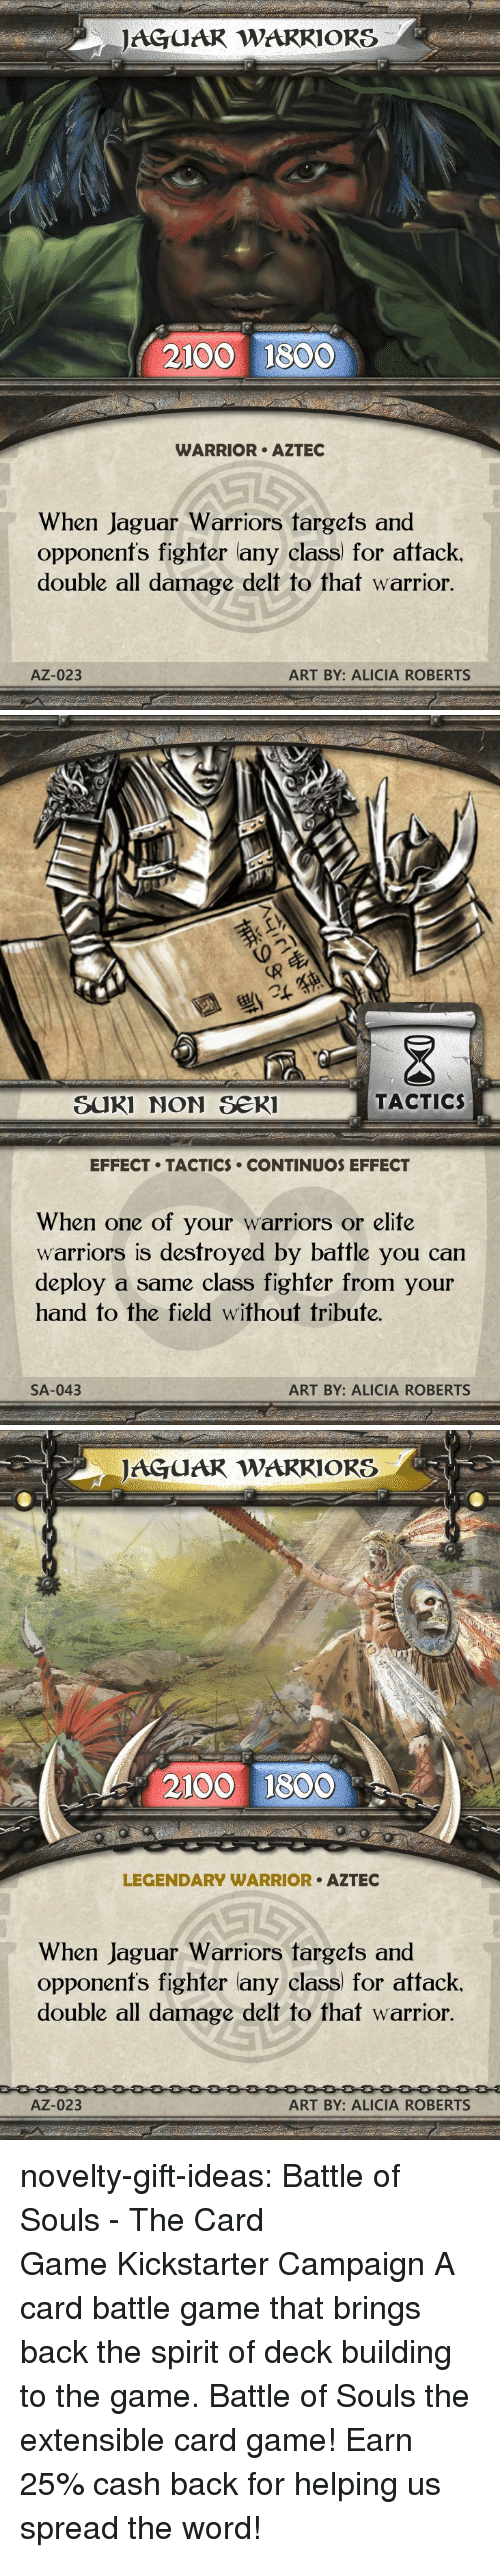 Alicia: JAGUAR WARRIORS  2100 1800  WARRIOR AZTEC  When Jaguar Warriors targets and  opponent's fighter any class) for attack  double all damage delt to that warrior.  AZ-023  ART BY: ALICIA ROBERTS   退  SUKI NON Se  TACTIC  EFFECT TACTICS CONTINUOS EFFECT  When one of your warriors or elite  warriors is destroyed by battle you can  deploy a same class fighfer from your  hand to the field without tribute.  SA-043  ART BY: ALICIA ROBERTS   JAGUAR WAKRIORS  2100 1800  LEGENDARY WARRIOR AZTEC  When Jaguar Warriors fargets and  opponenfs fighter lany class) for attack.  double all damage delt to that warrior  AZ-023  ART BY: ALICIA ROBERTS novelty-gift-ideas: Battle of Souls - The Card GameKickstarter Campaign A card battle game that brings back the spirit of deck building to the game. Battle of Souls the extensible card game!   Earn 25% cash back for helping us spread the word!